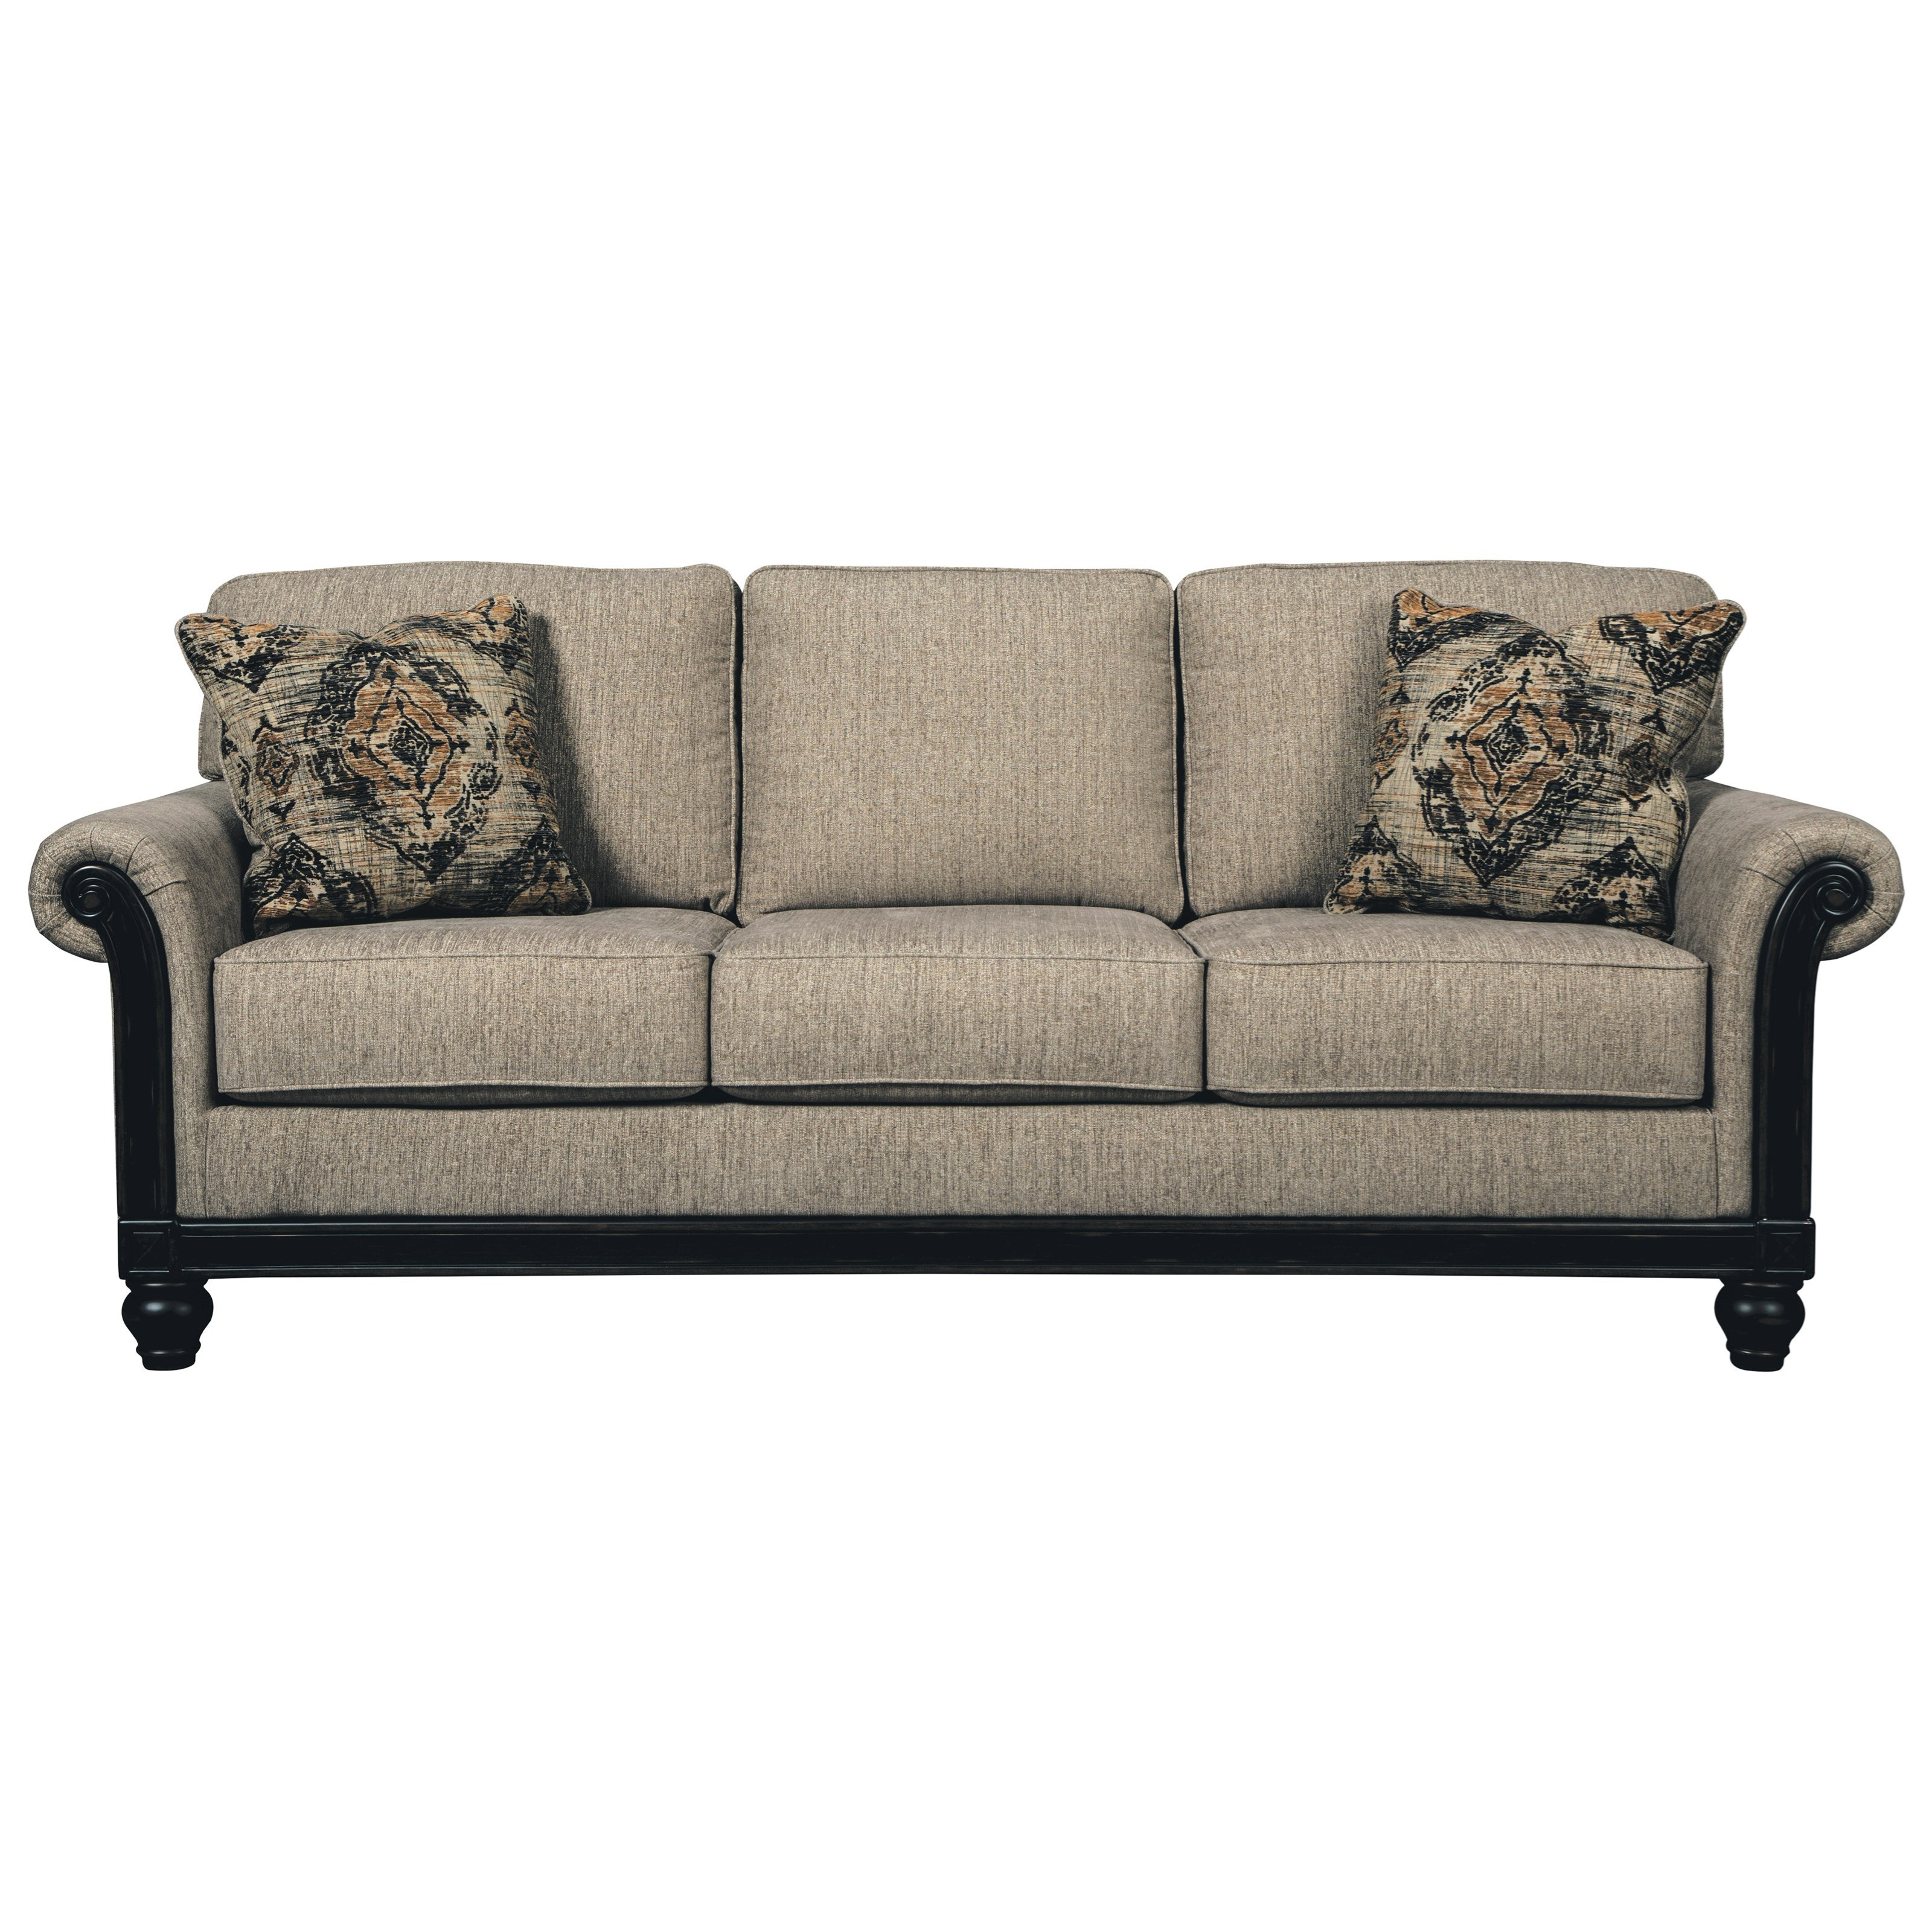 Ashley signature design blackwood 3350339 transtional for Ashley sleeper sofa